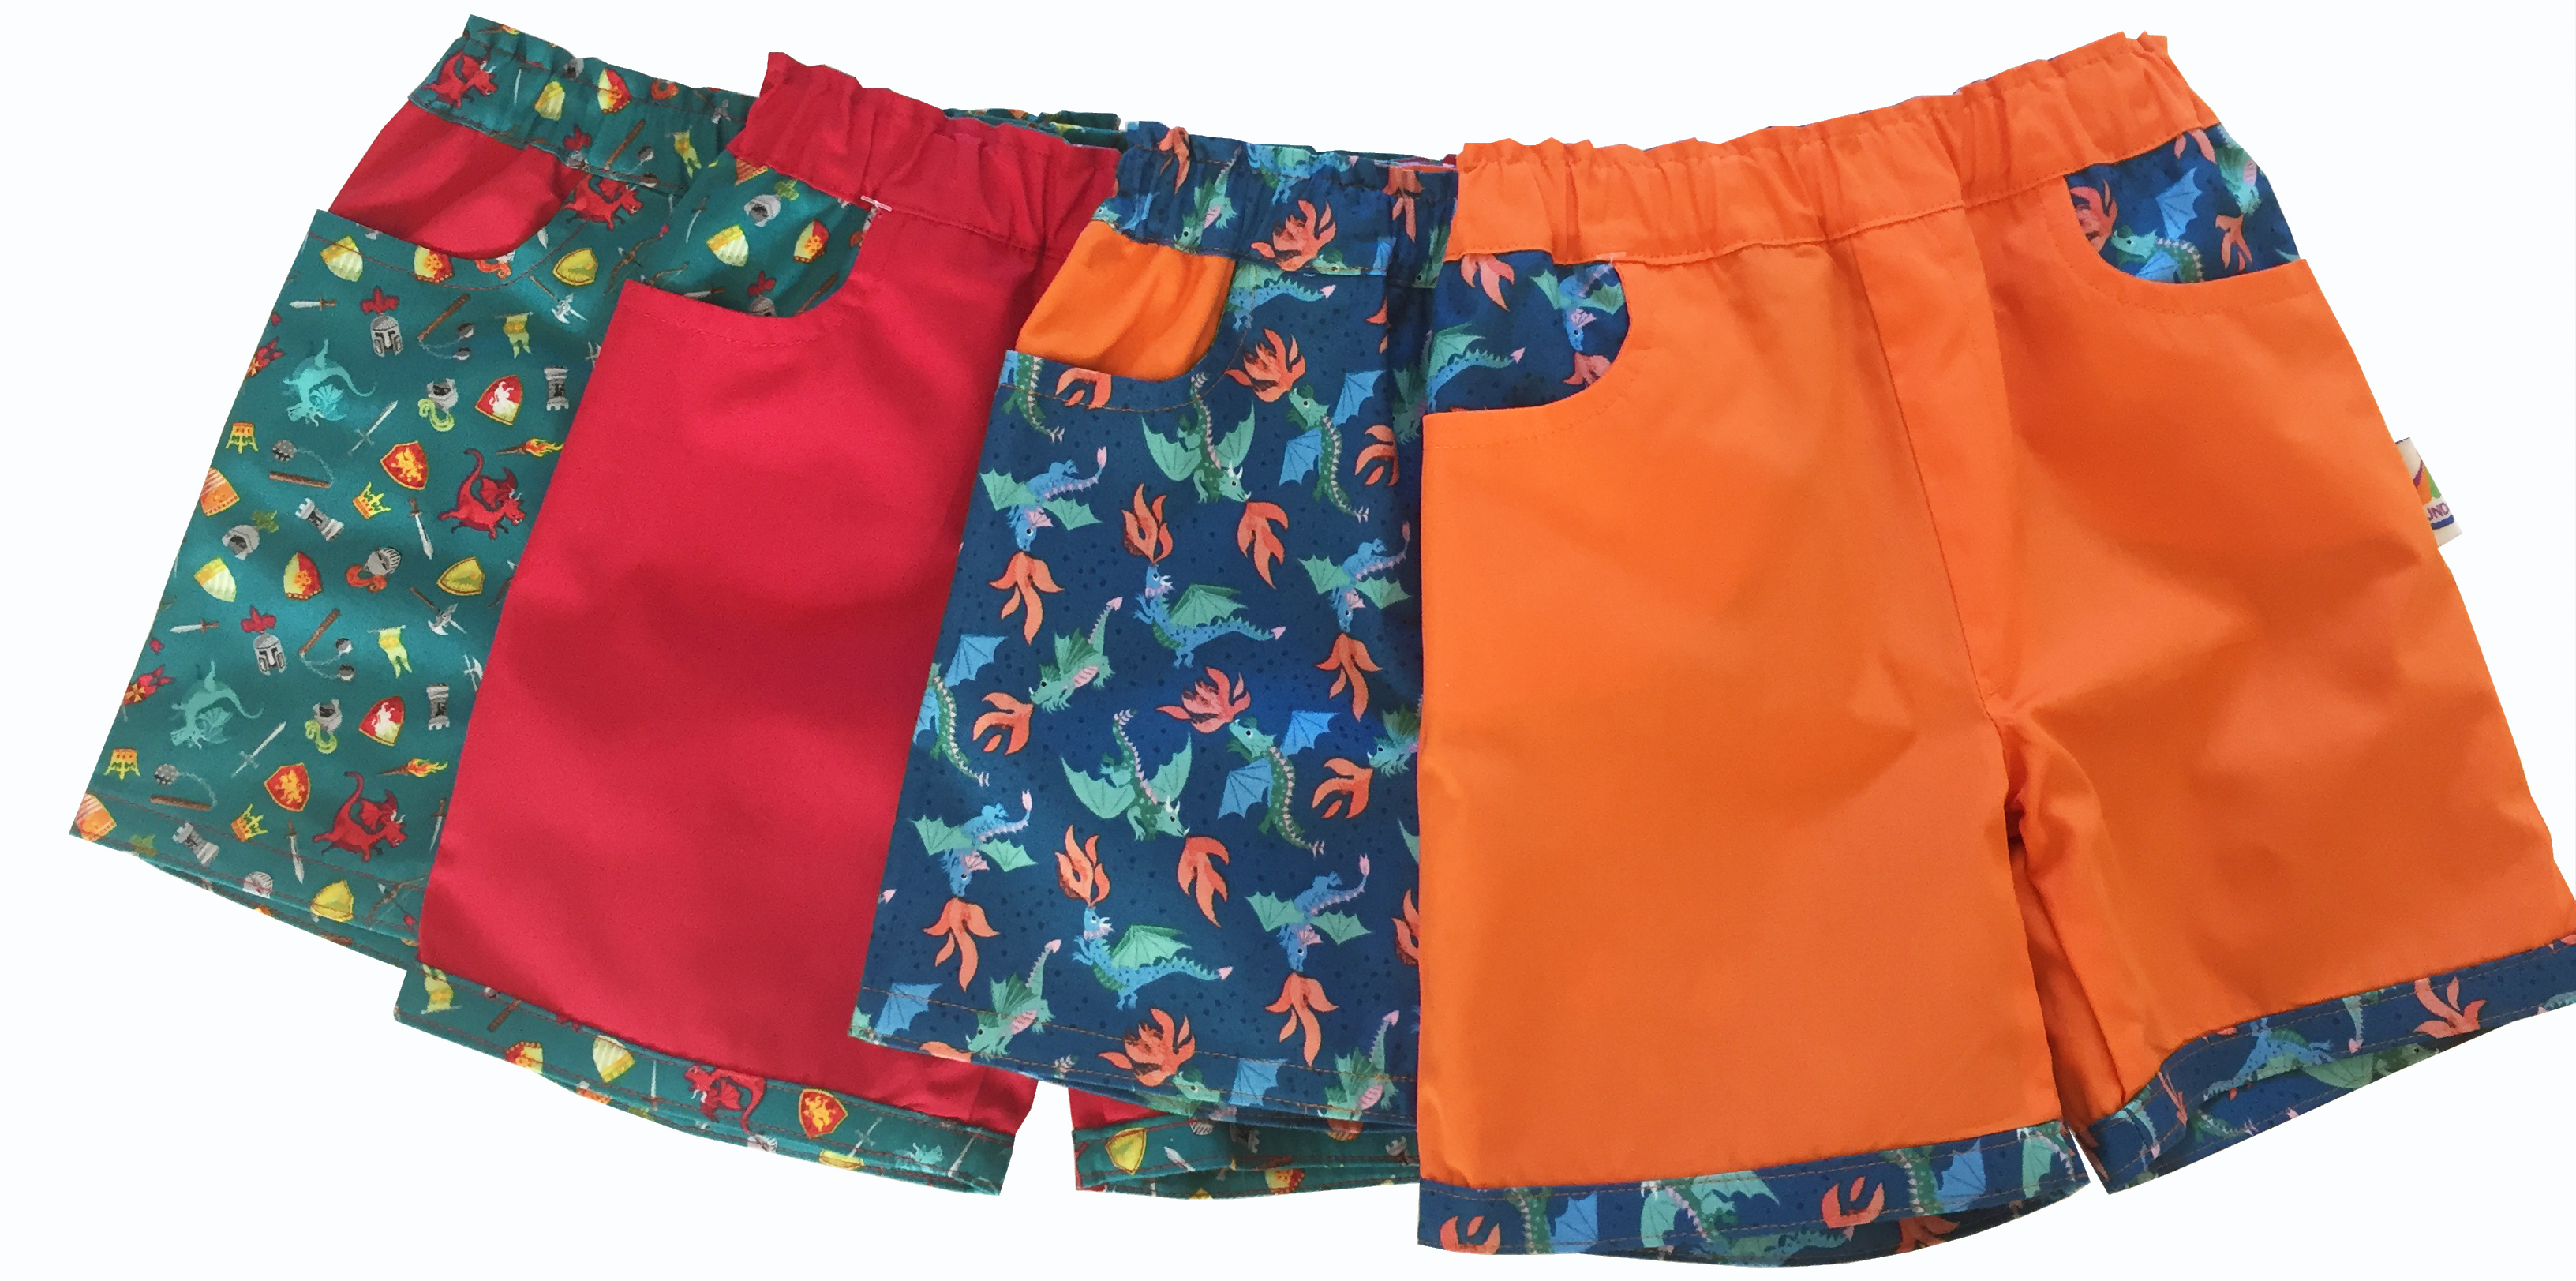 Colourful reversible knights and dragons shorts